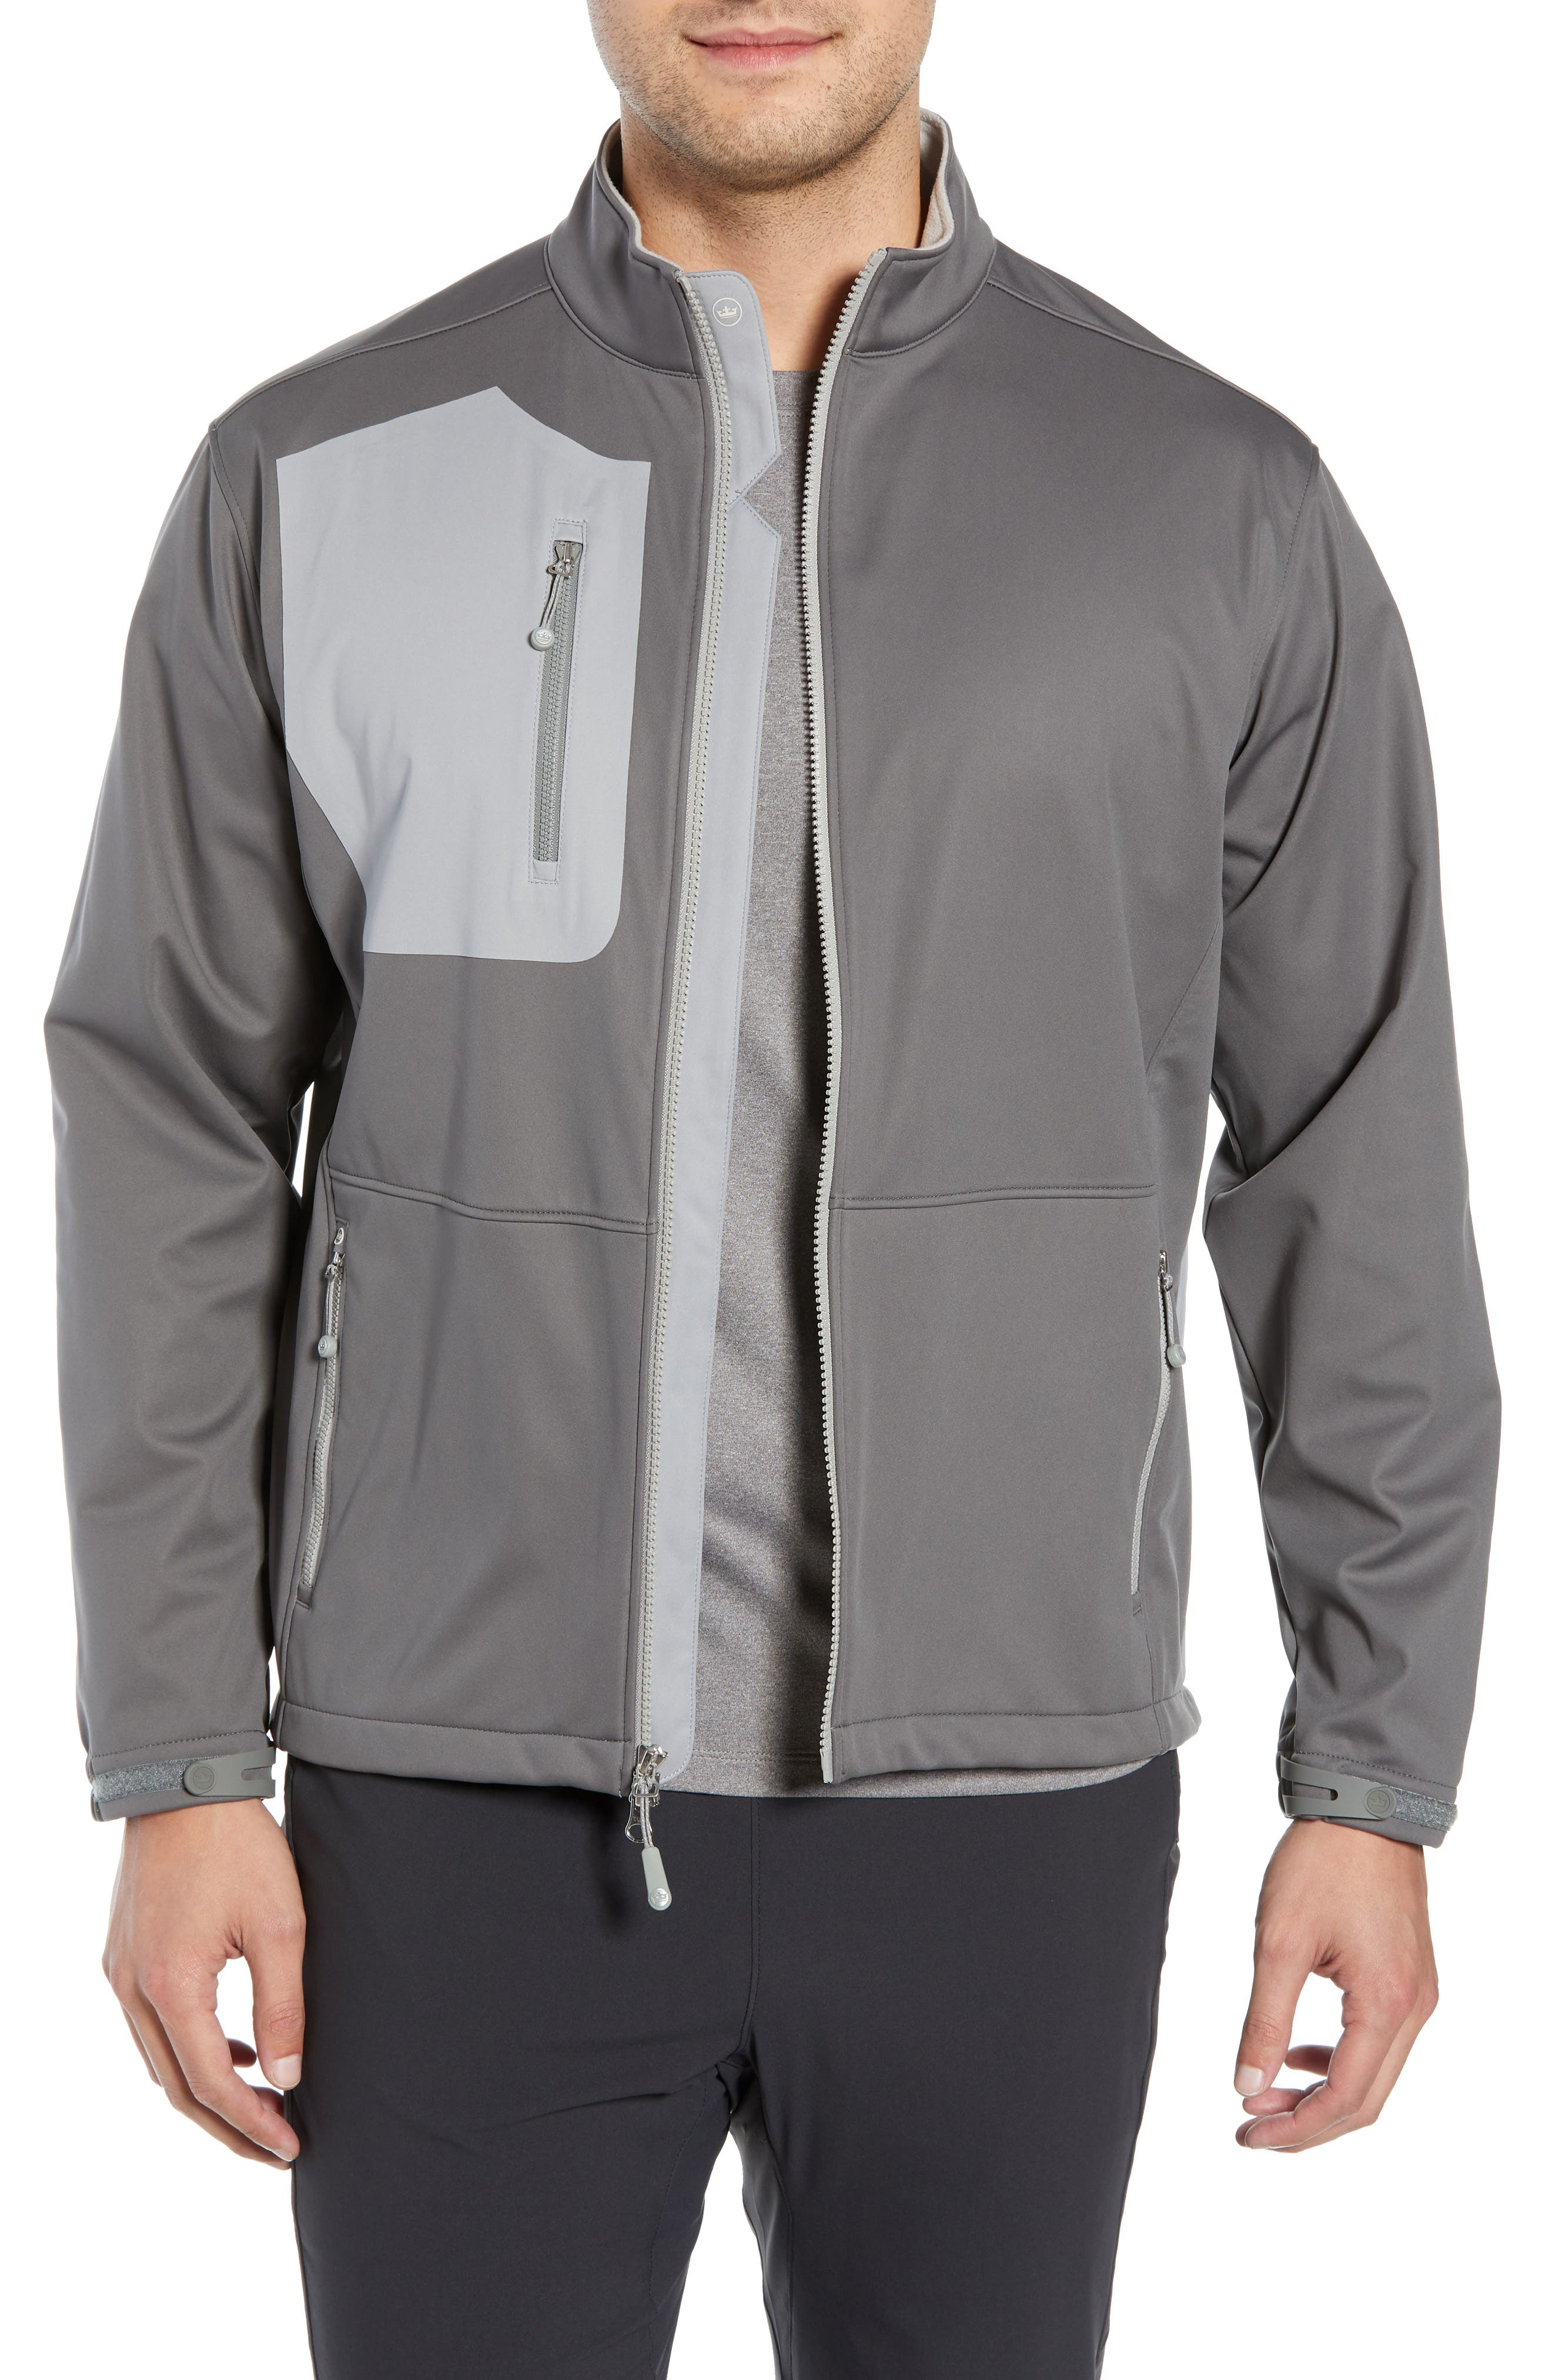 PETER MILLAR Gale Force Stretch Soft Shell Jacket, Main, color, SMOKE